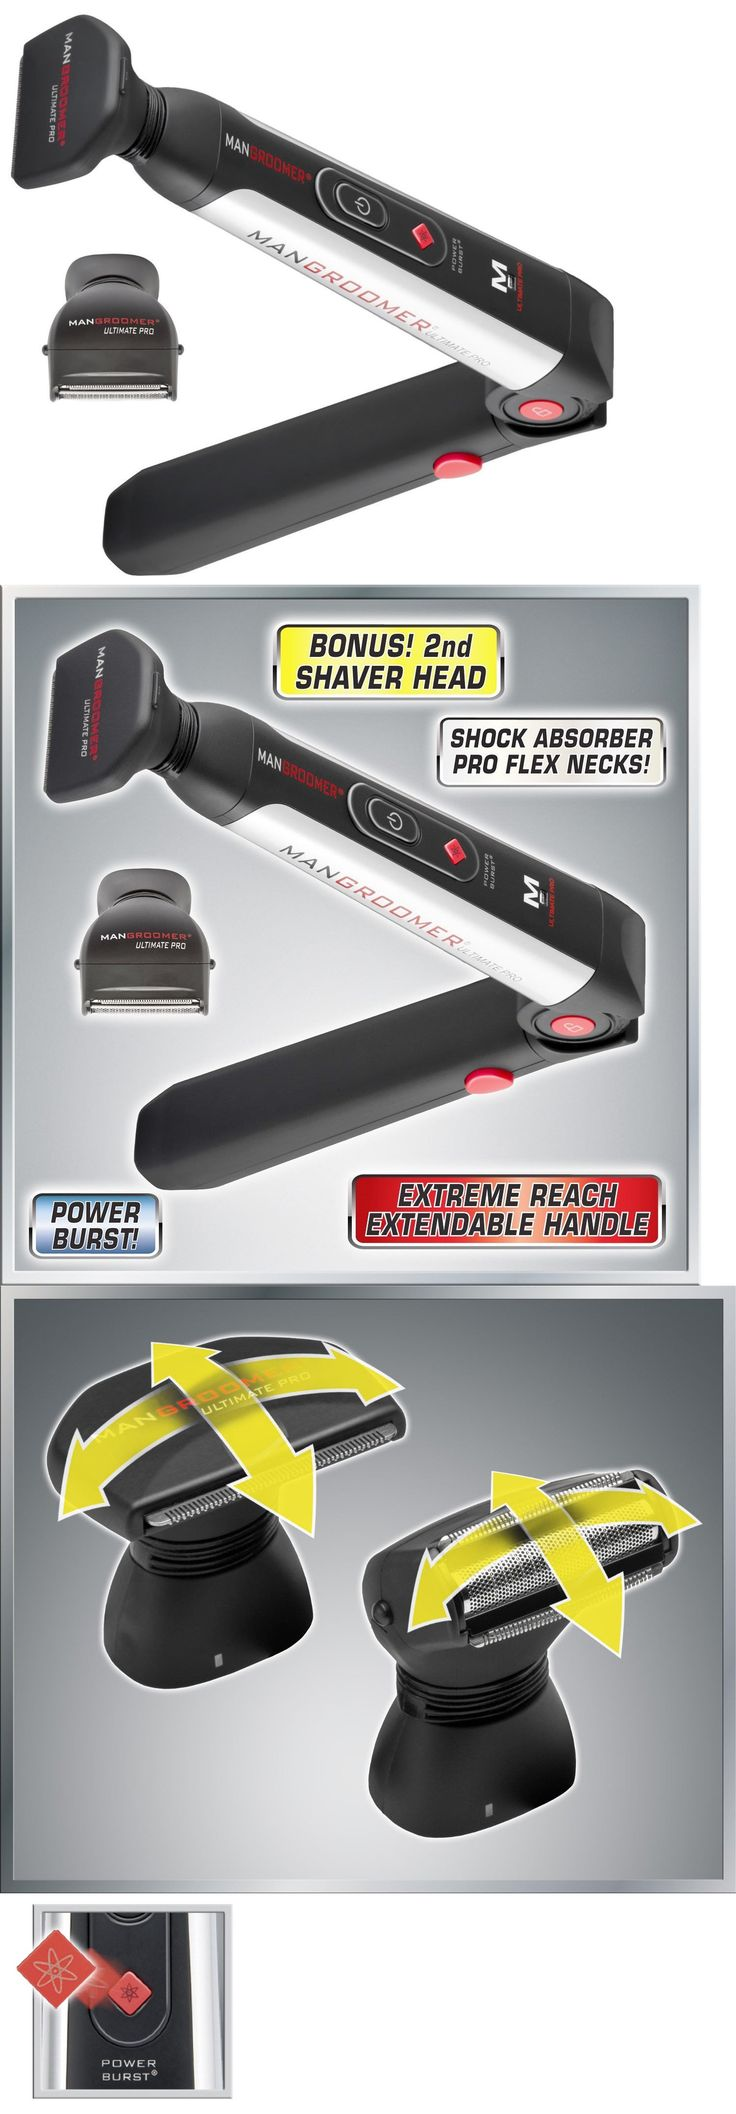 Mens Shavers: Mangroomer Ultimate Pro Back Shaver With 2 Shock Absorber Flex Heads Power Hinge BUY IT NOW ONLY: $53.69